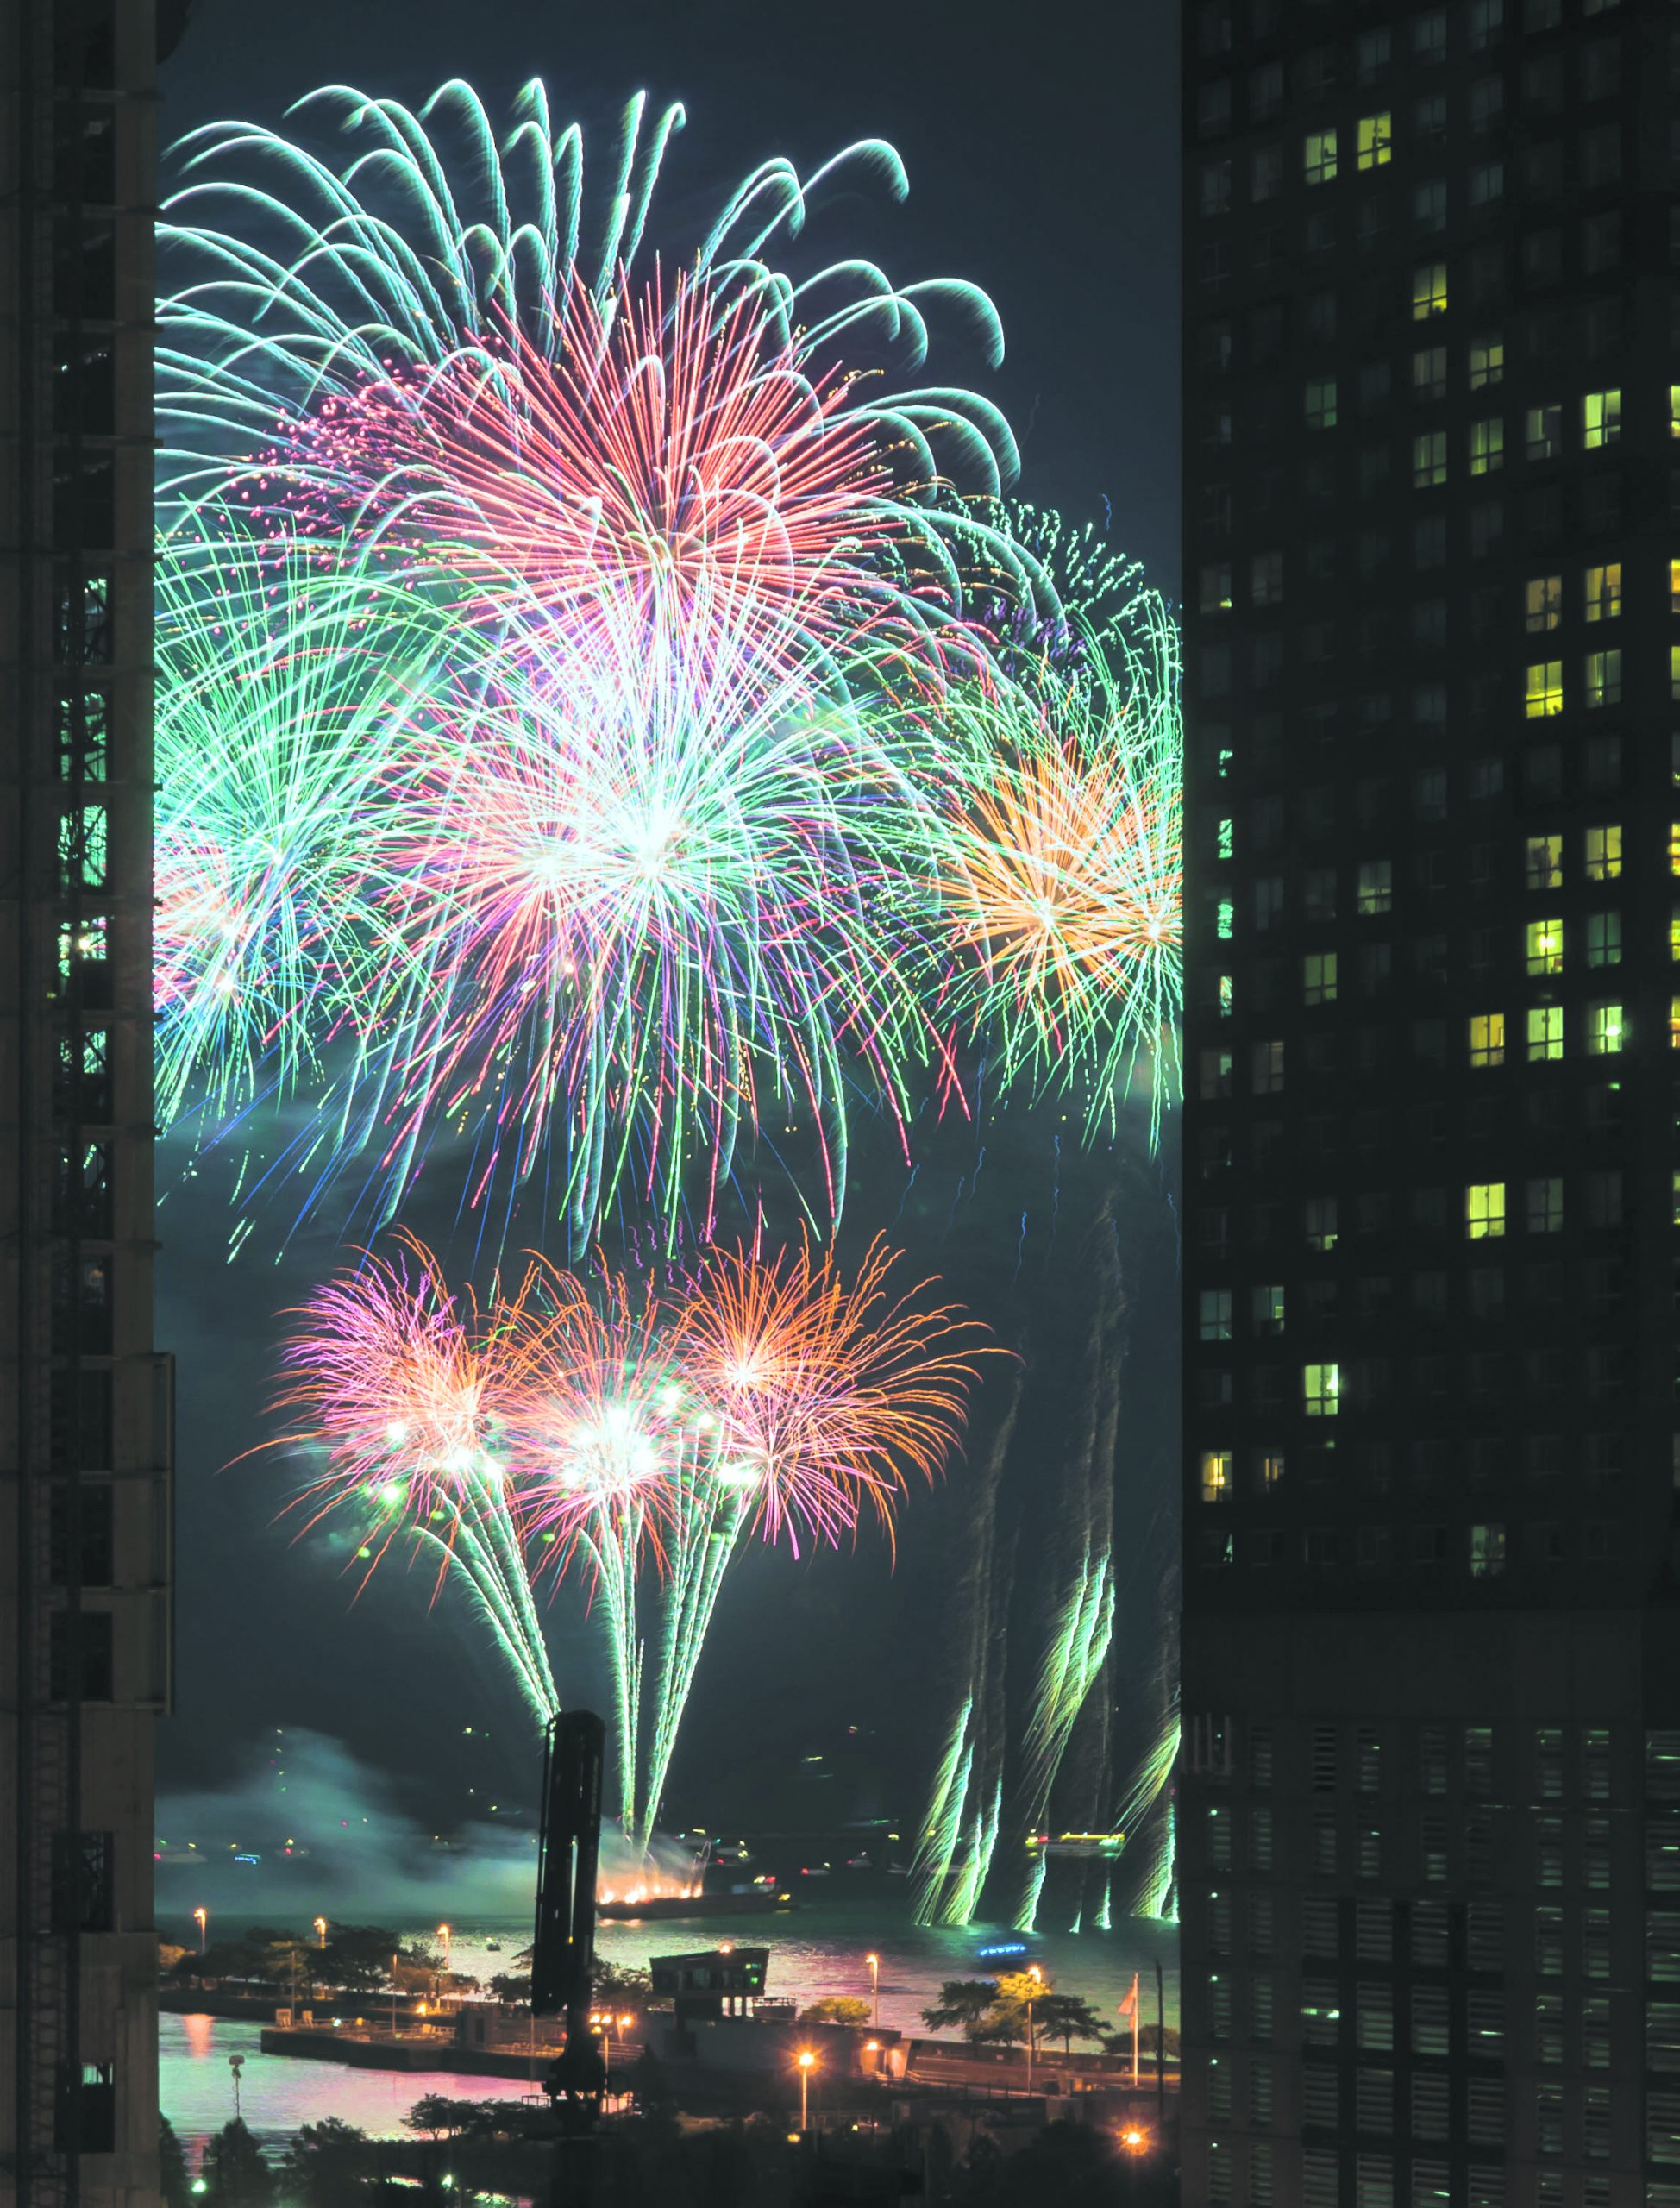 Navy Pier fireworks will be dy-no-mite! They begin on Tuesday 7/4 at 9:30 PM.